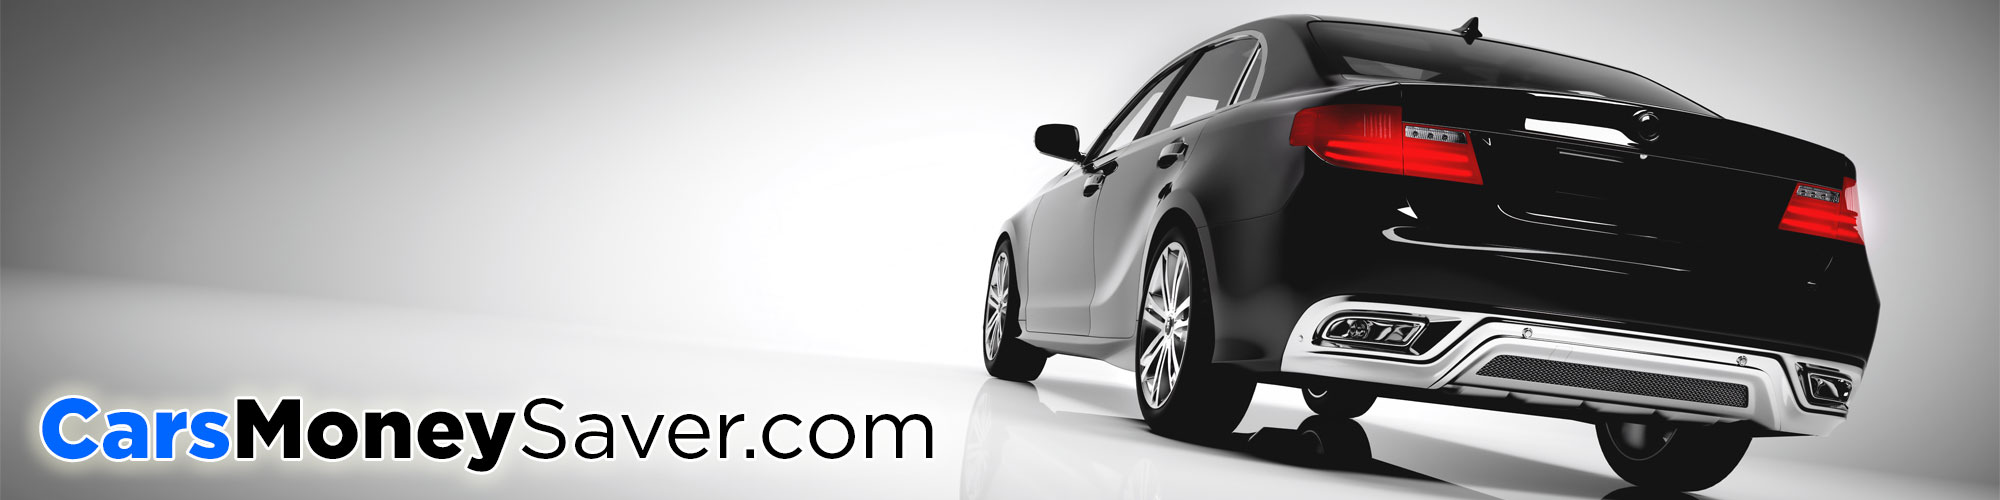 Online Car Products